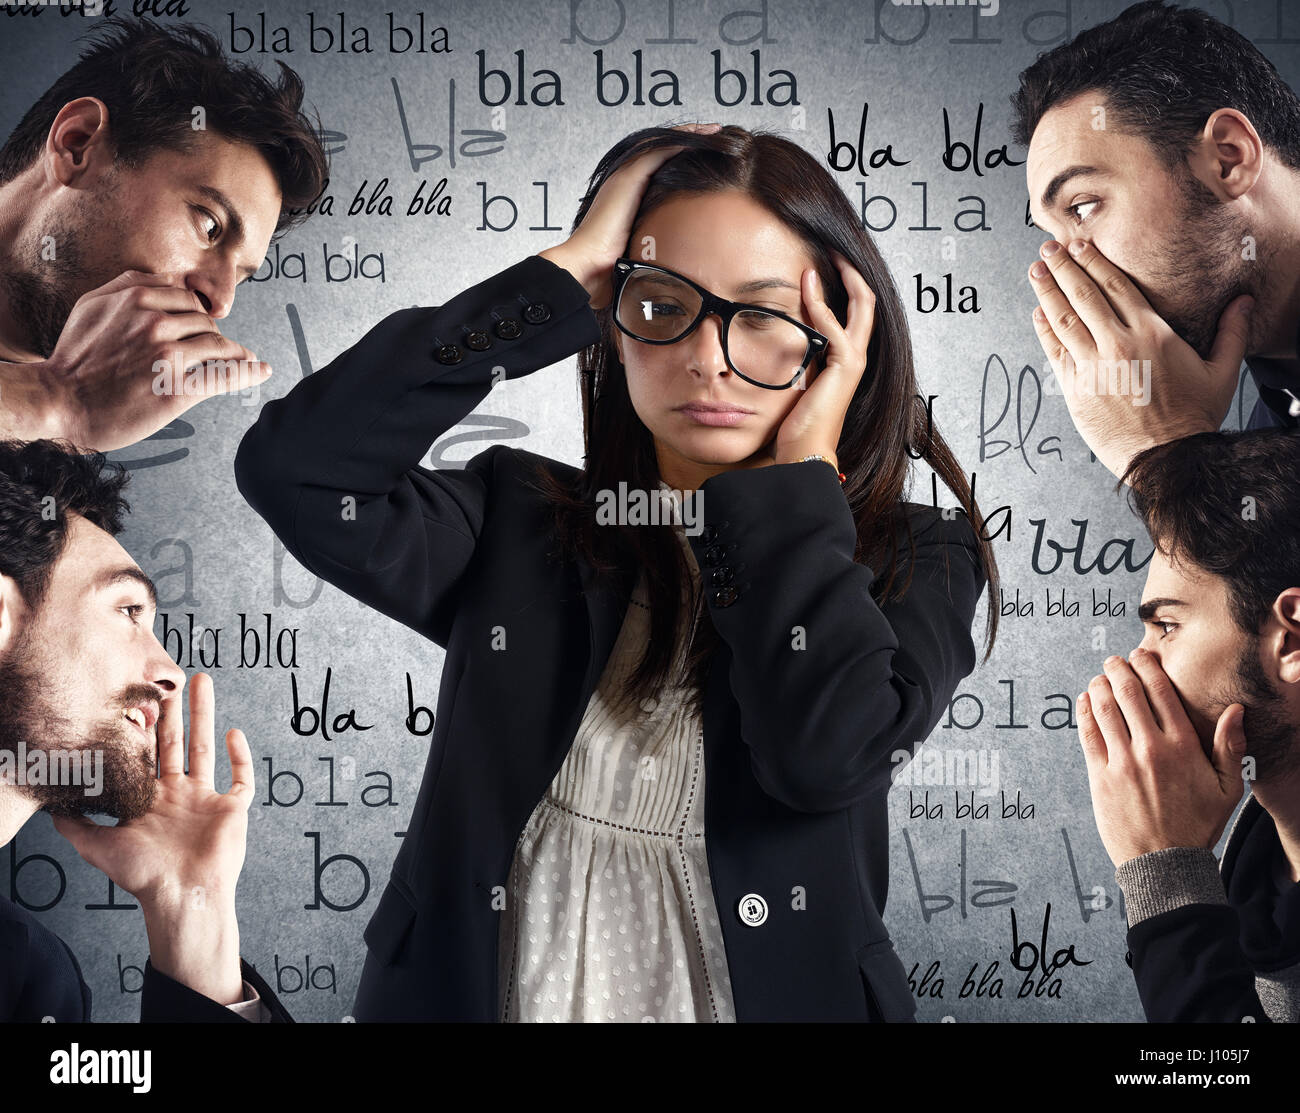 Woman from too much chatter - Stock Image